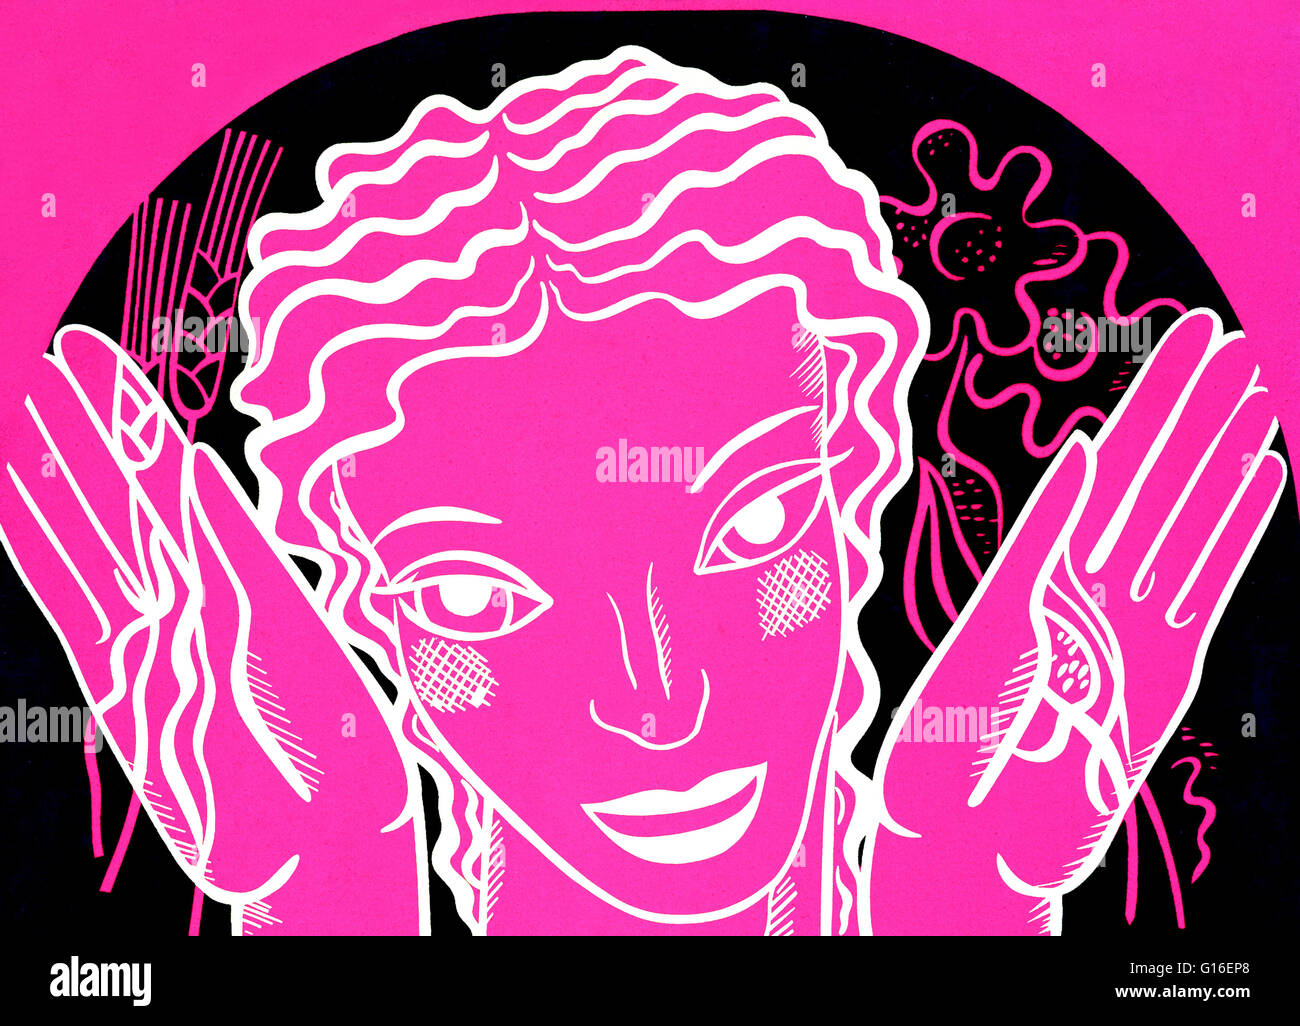 WPA poster design on pink background showing the head and hands of a woman holding flowers and wheat. The Federal - Stock Image